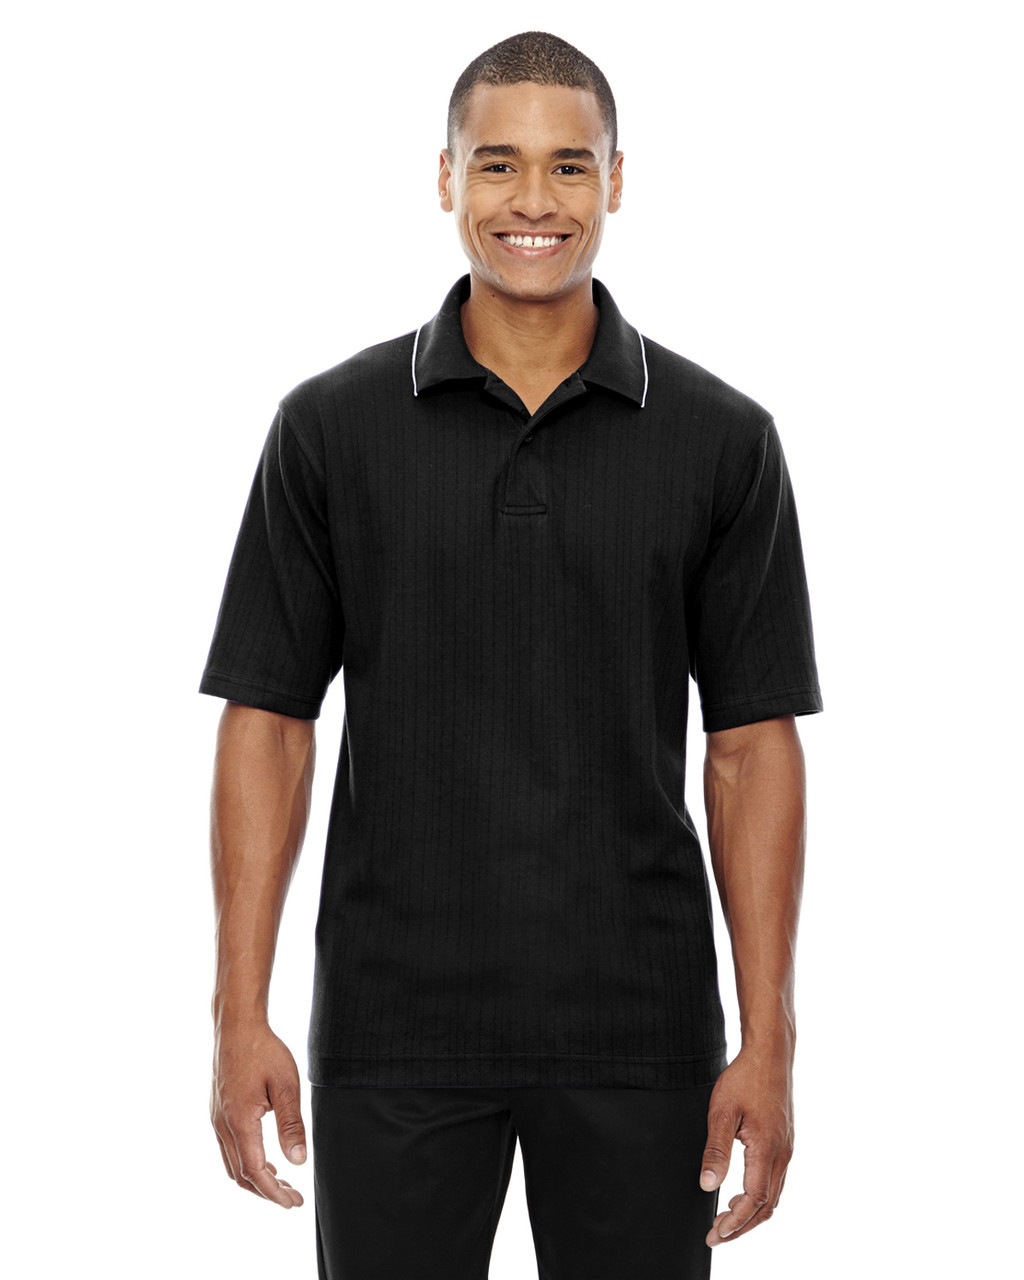 Black - 85067 Extreme Men's Edry™ Needle Out Interlock Polo Shirt | BlankClothing.ca